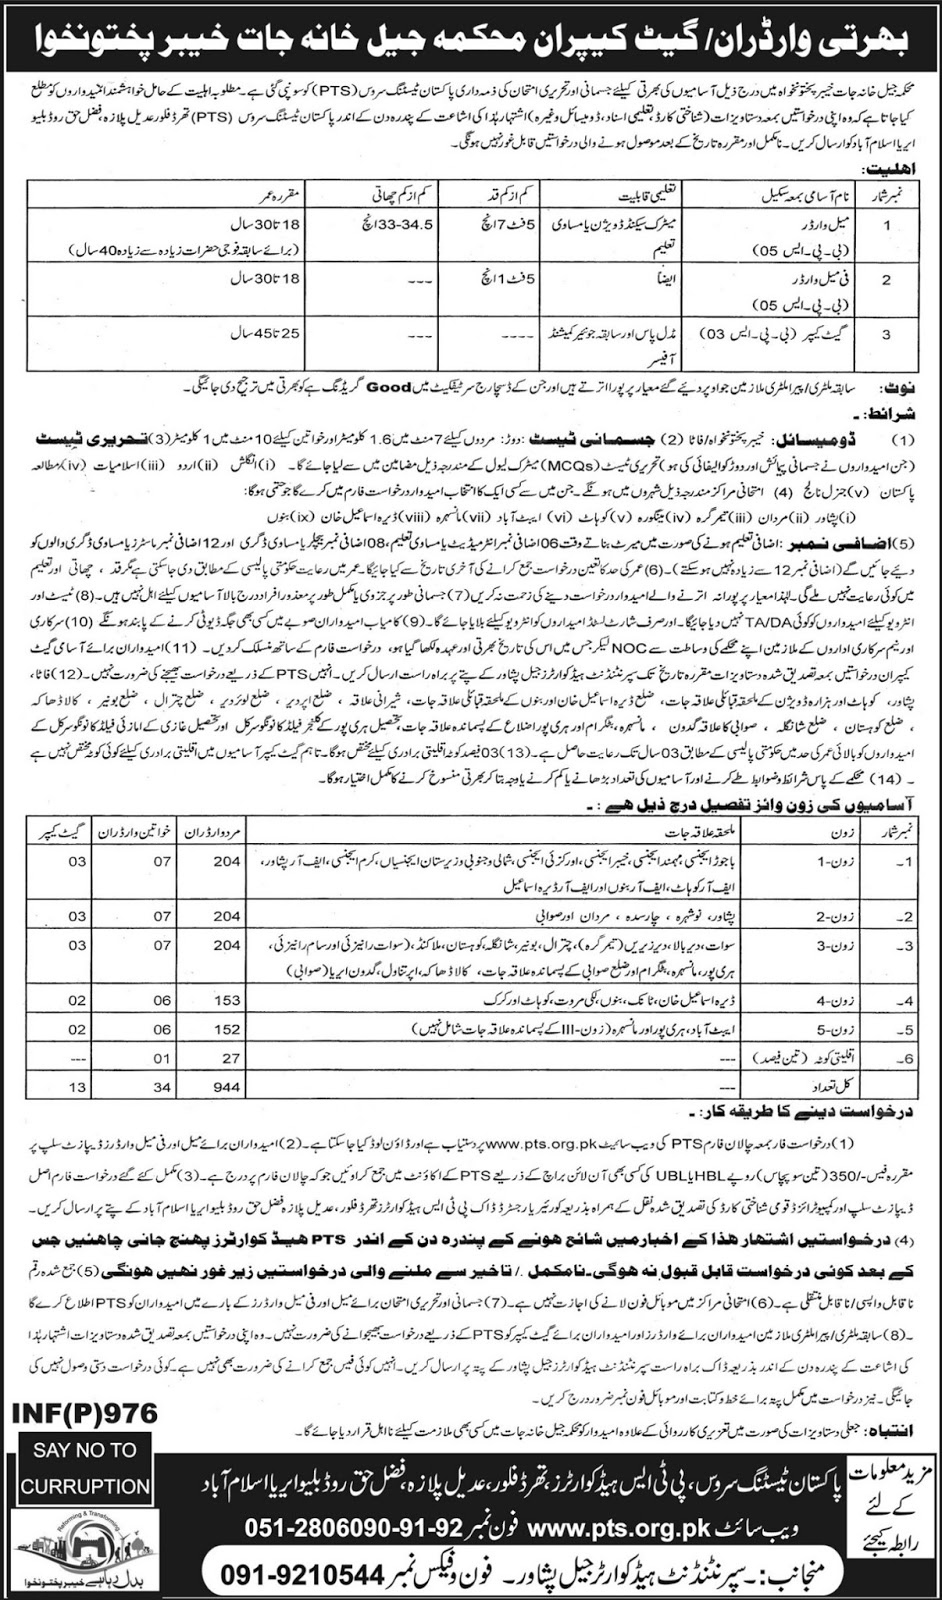 Jobs In Prison Department Govt of Khyber Pakhtunkhwa Peshawar 2018 for 991 Vacancies via PTS